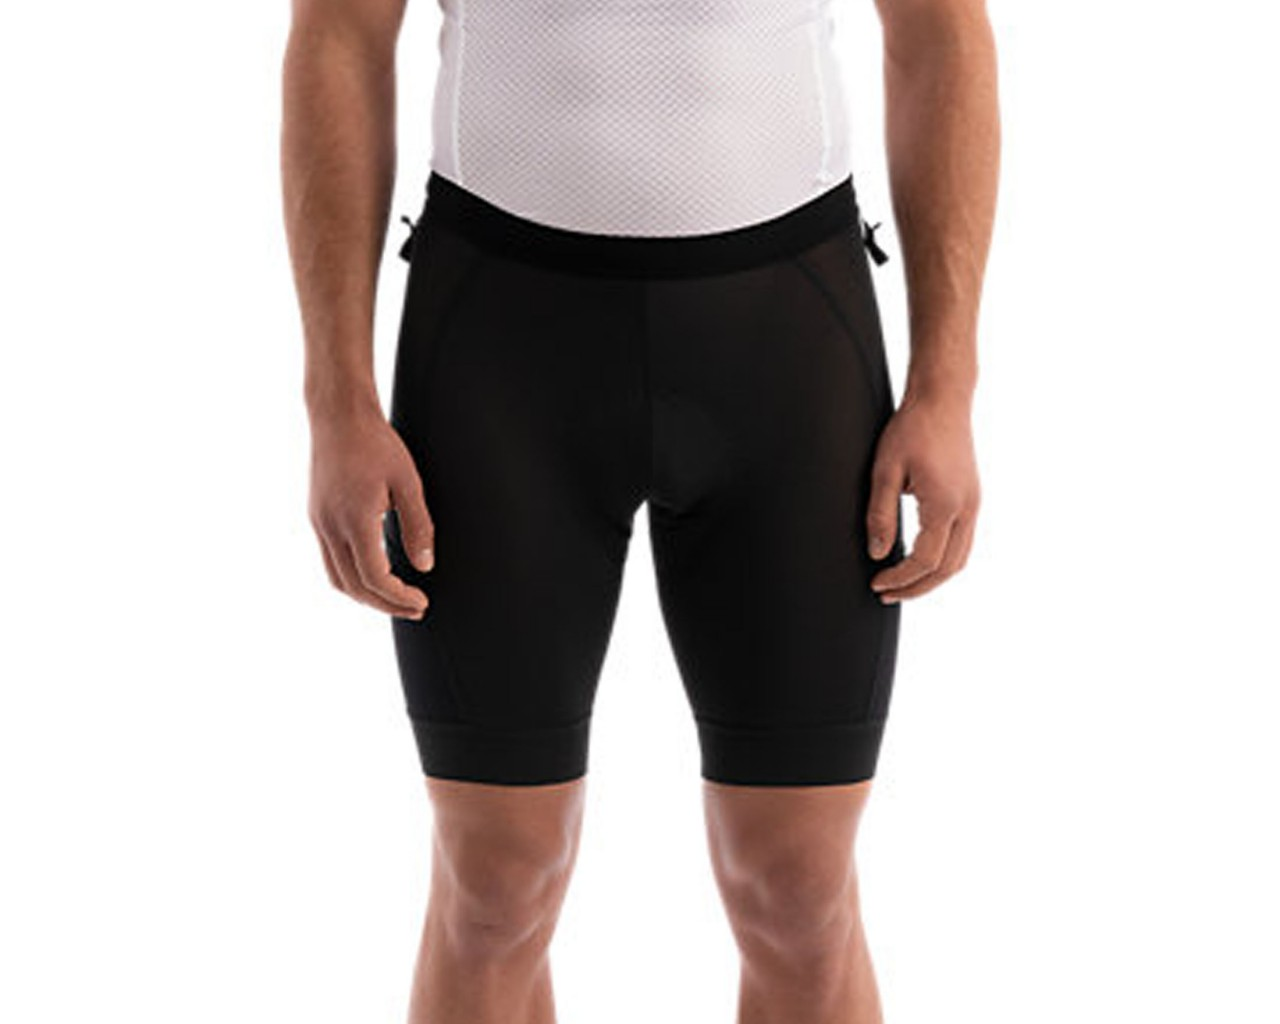 Specialized Ultralight Liner Shorts with Swat   black